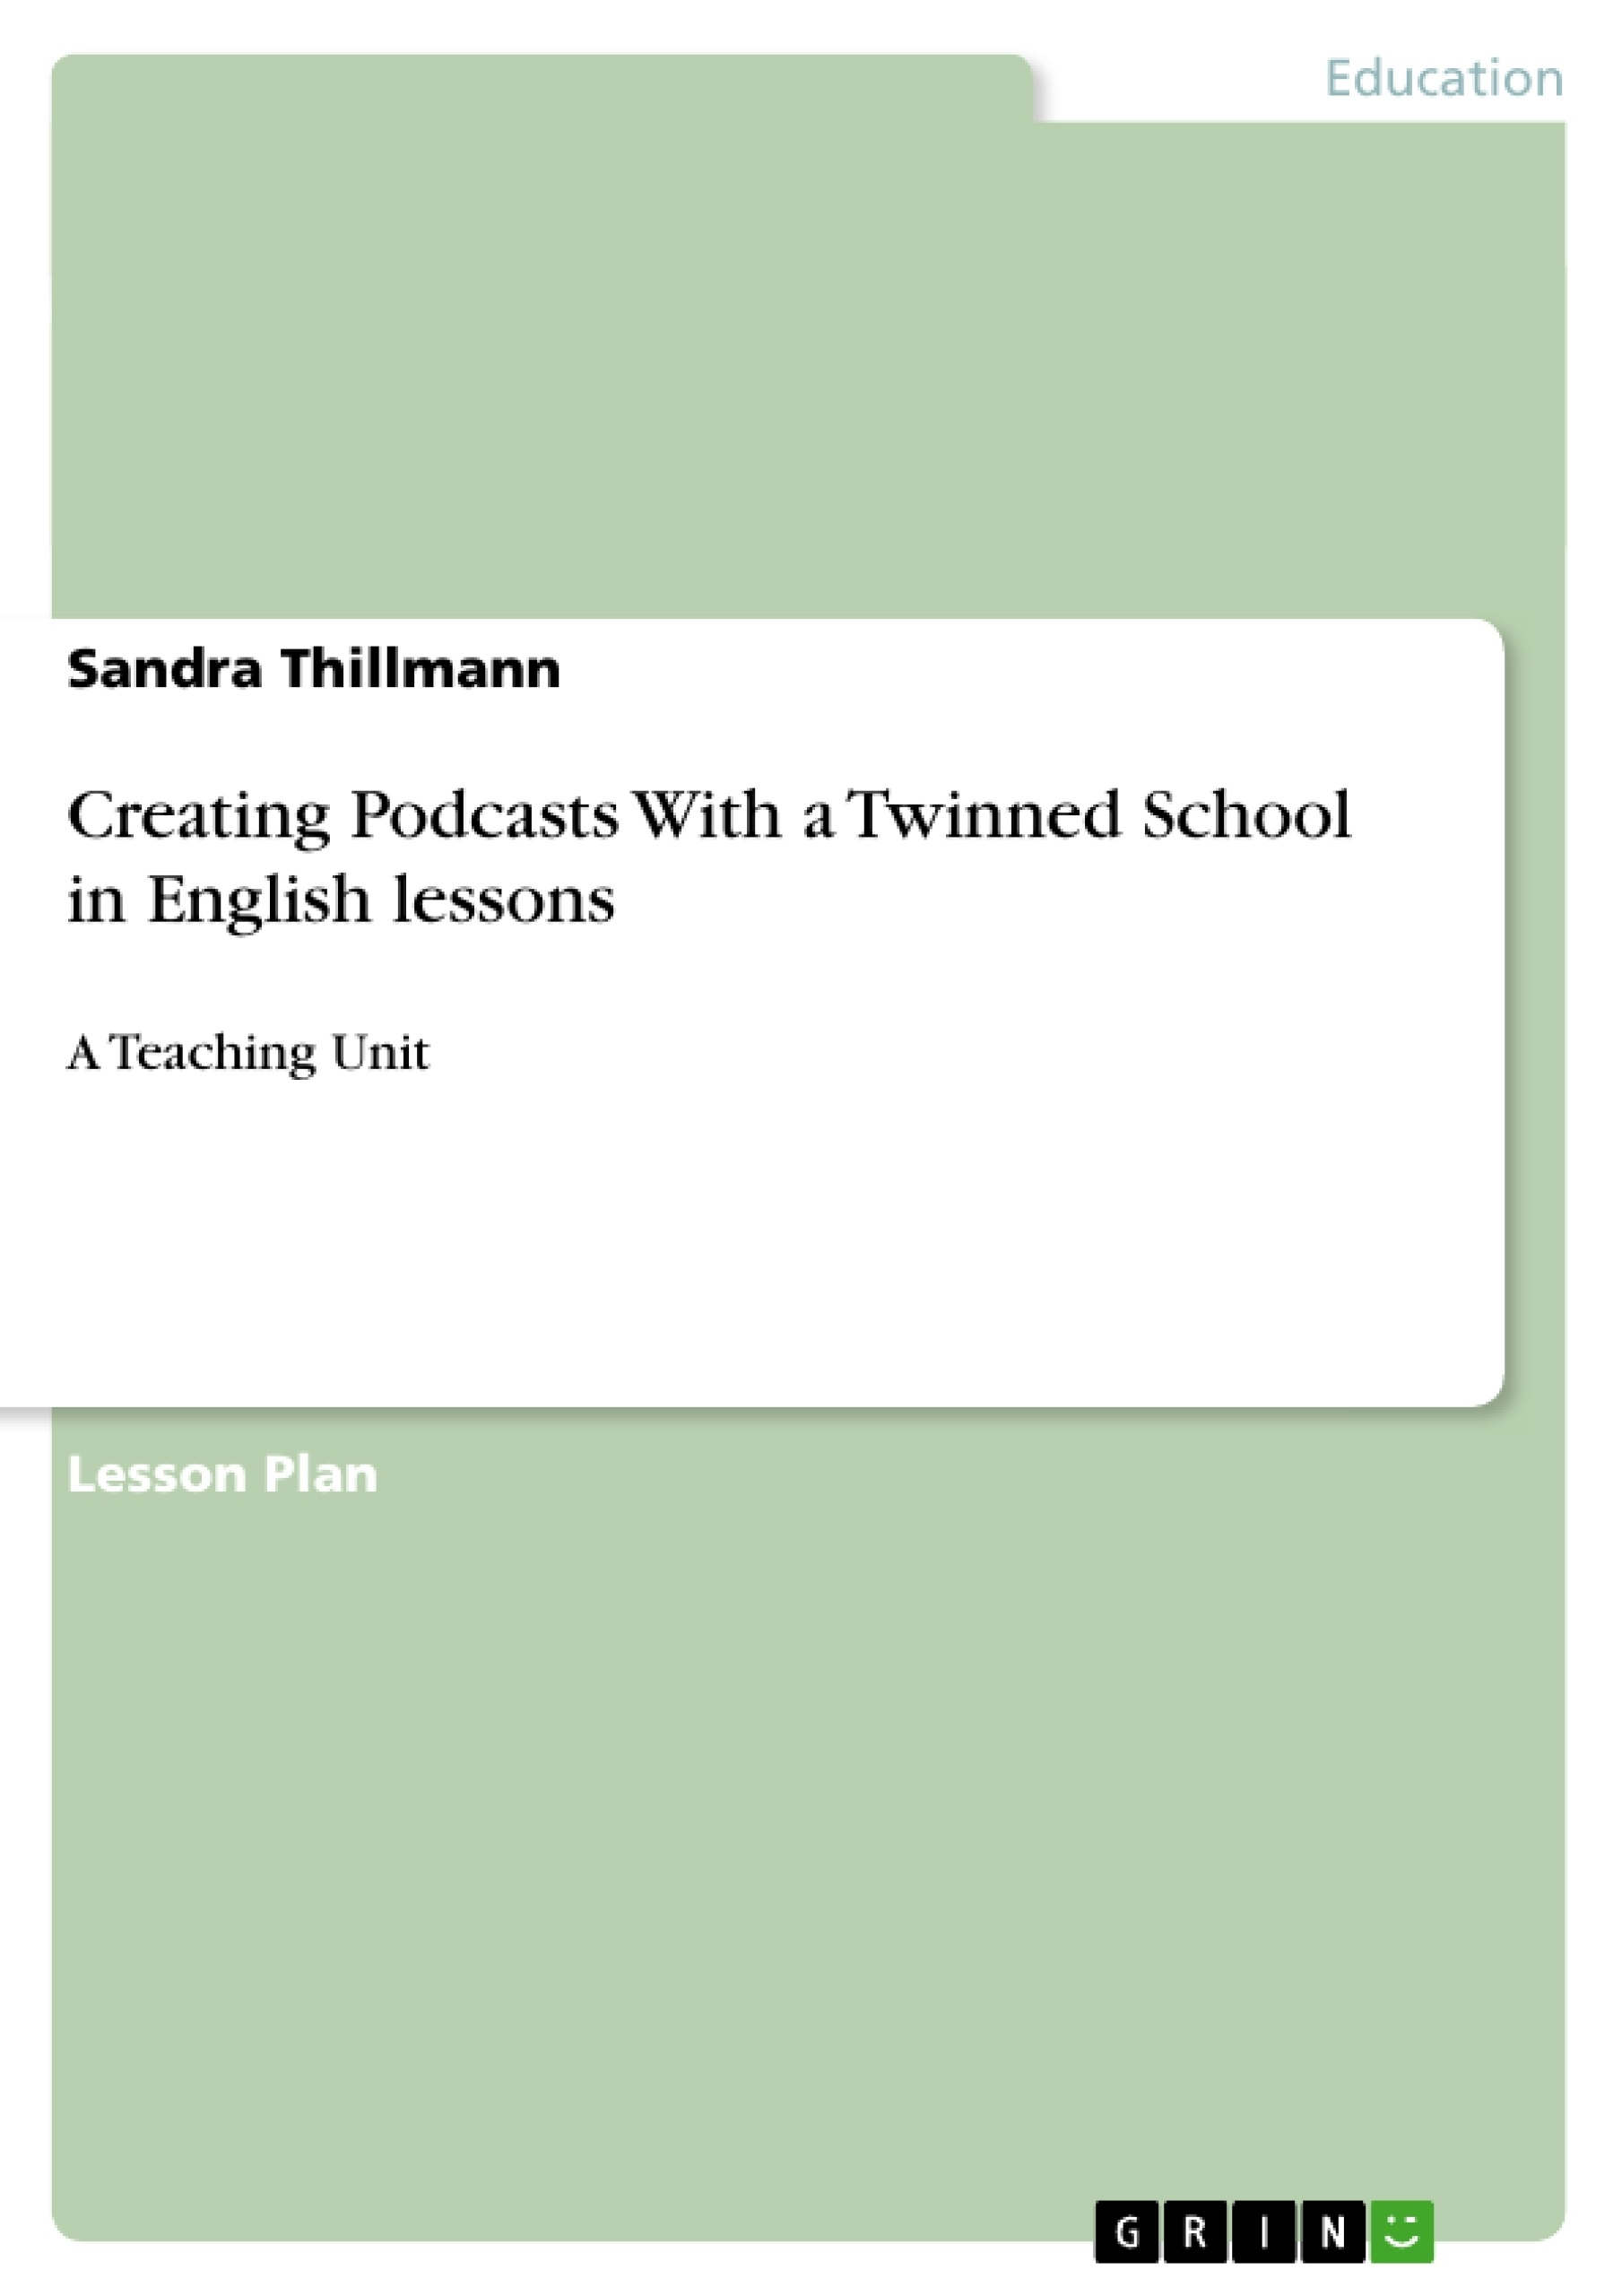 Title: Creating Podcasts With a Twinned School in English lessons